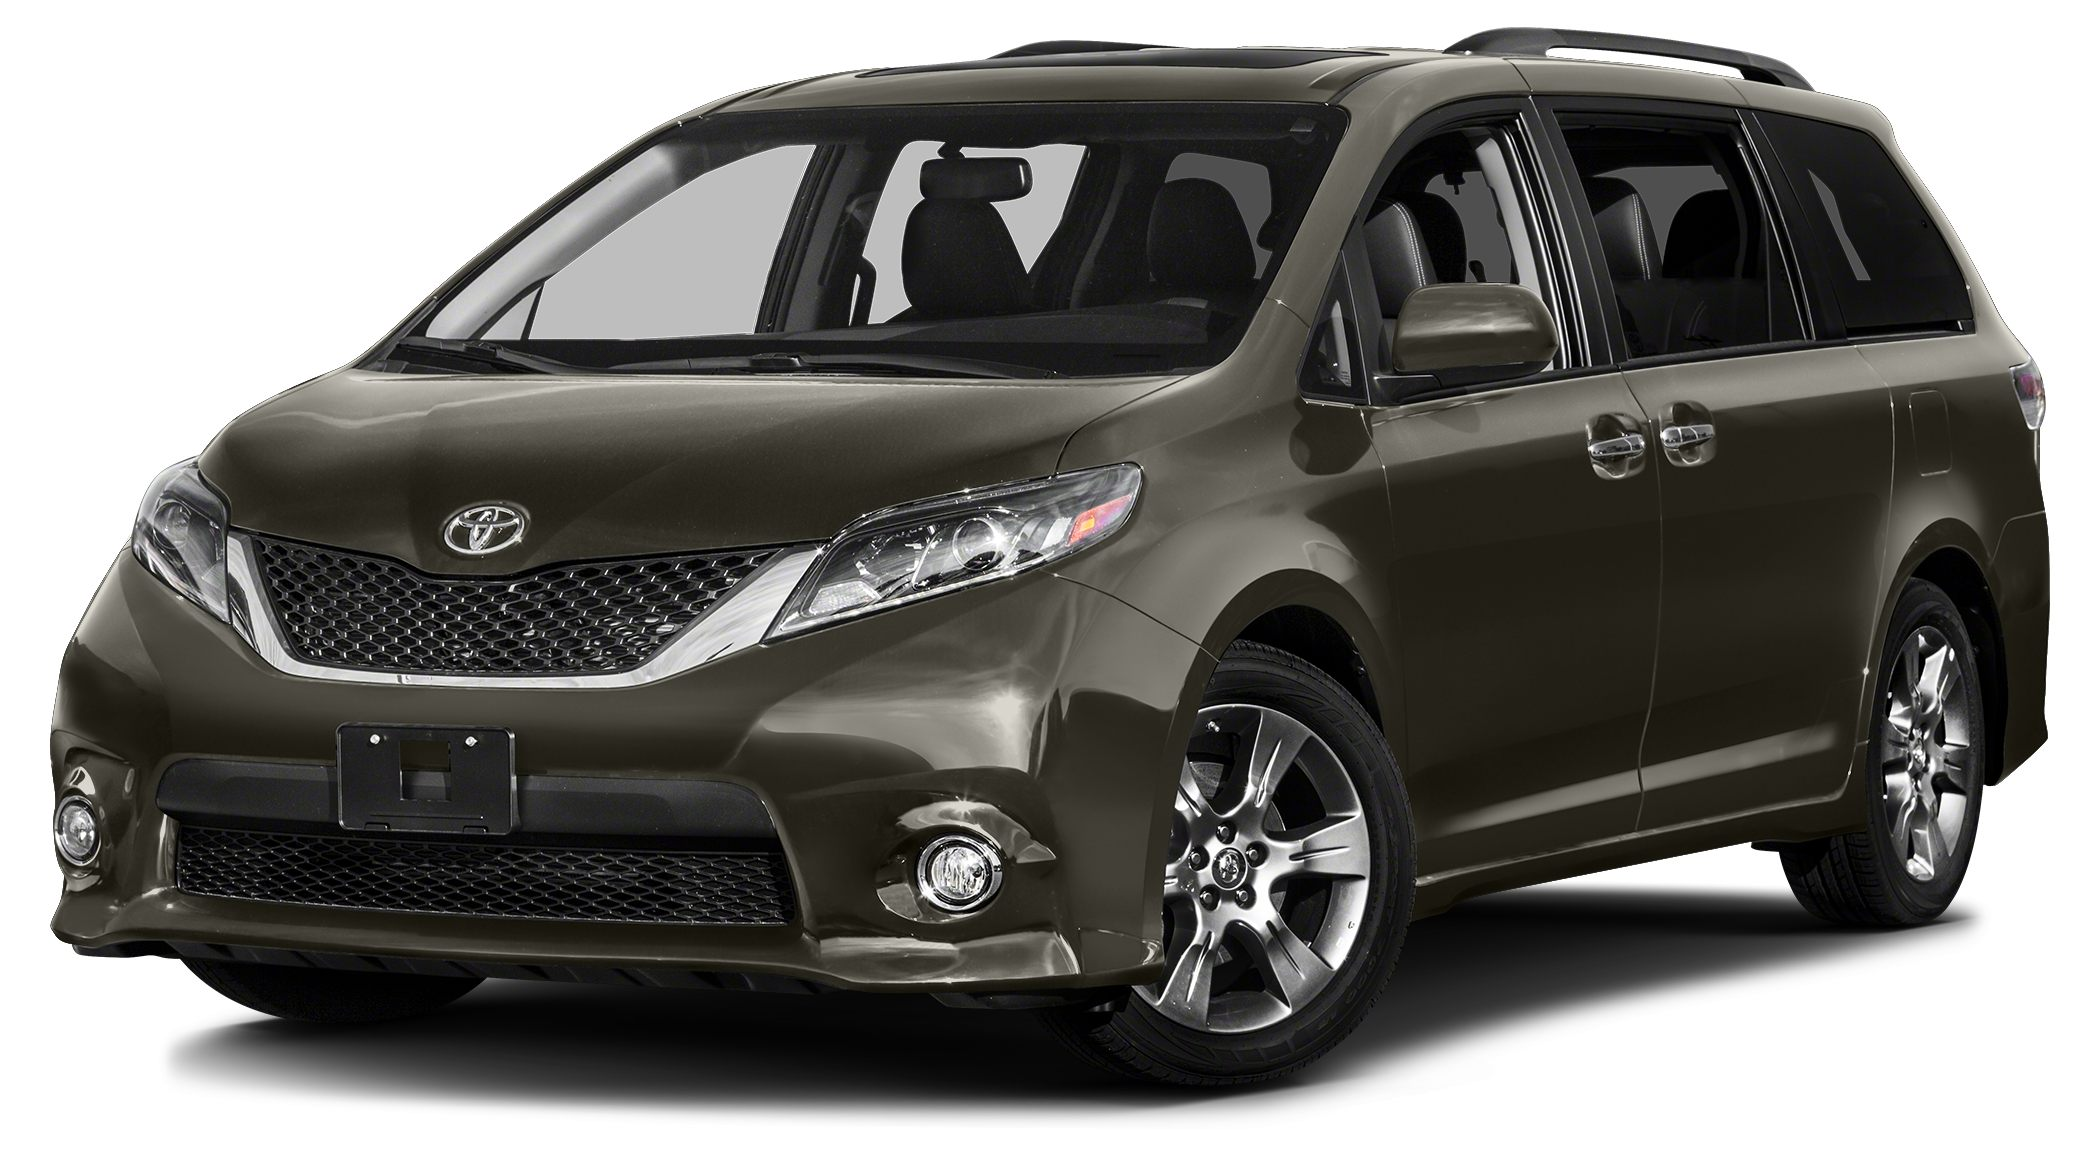 2015 Toyota Sienna SE 8 Passenger PRICED TO MOVE 500 below Kelley Blue Book FUEL EFFICIENT 25 M